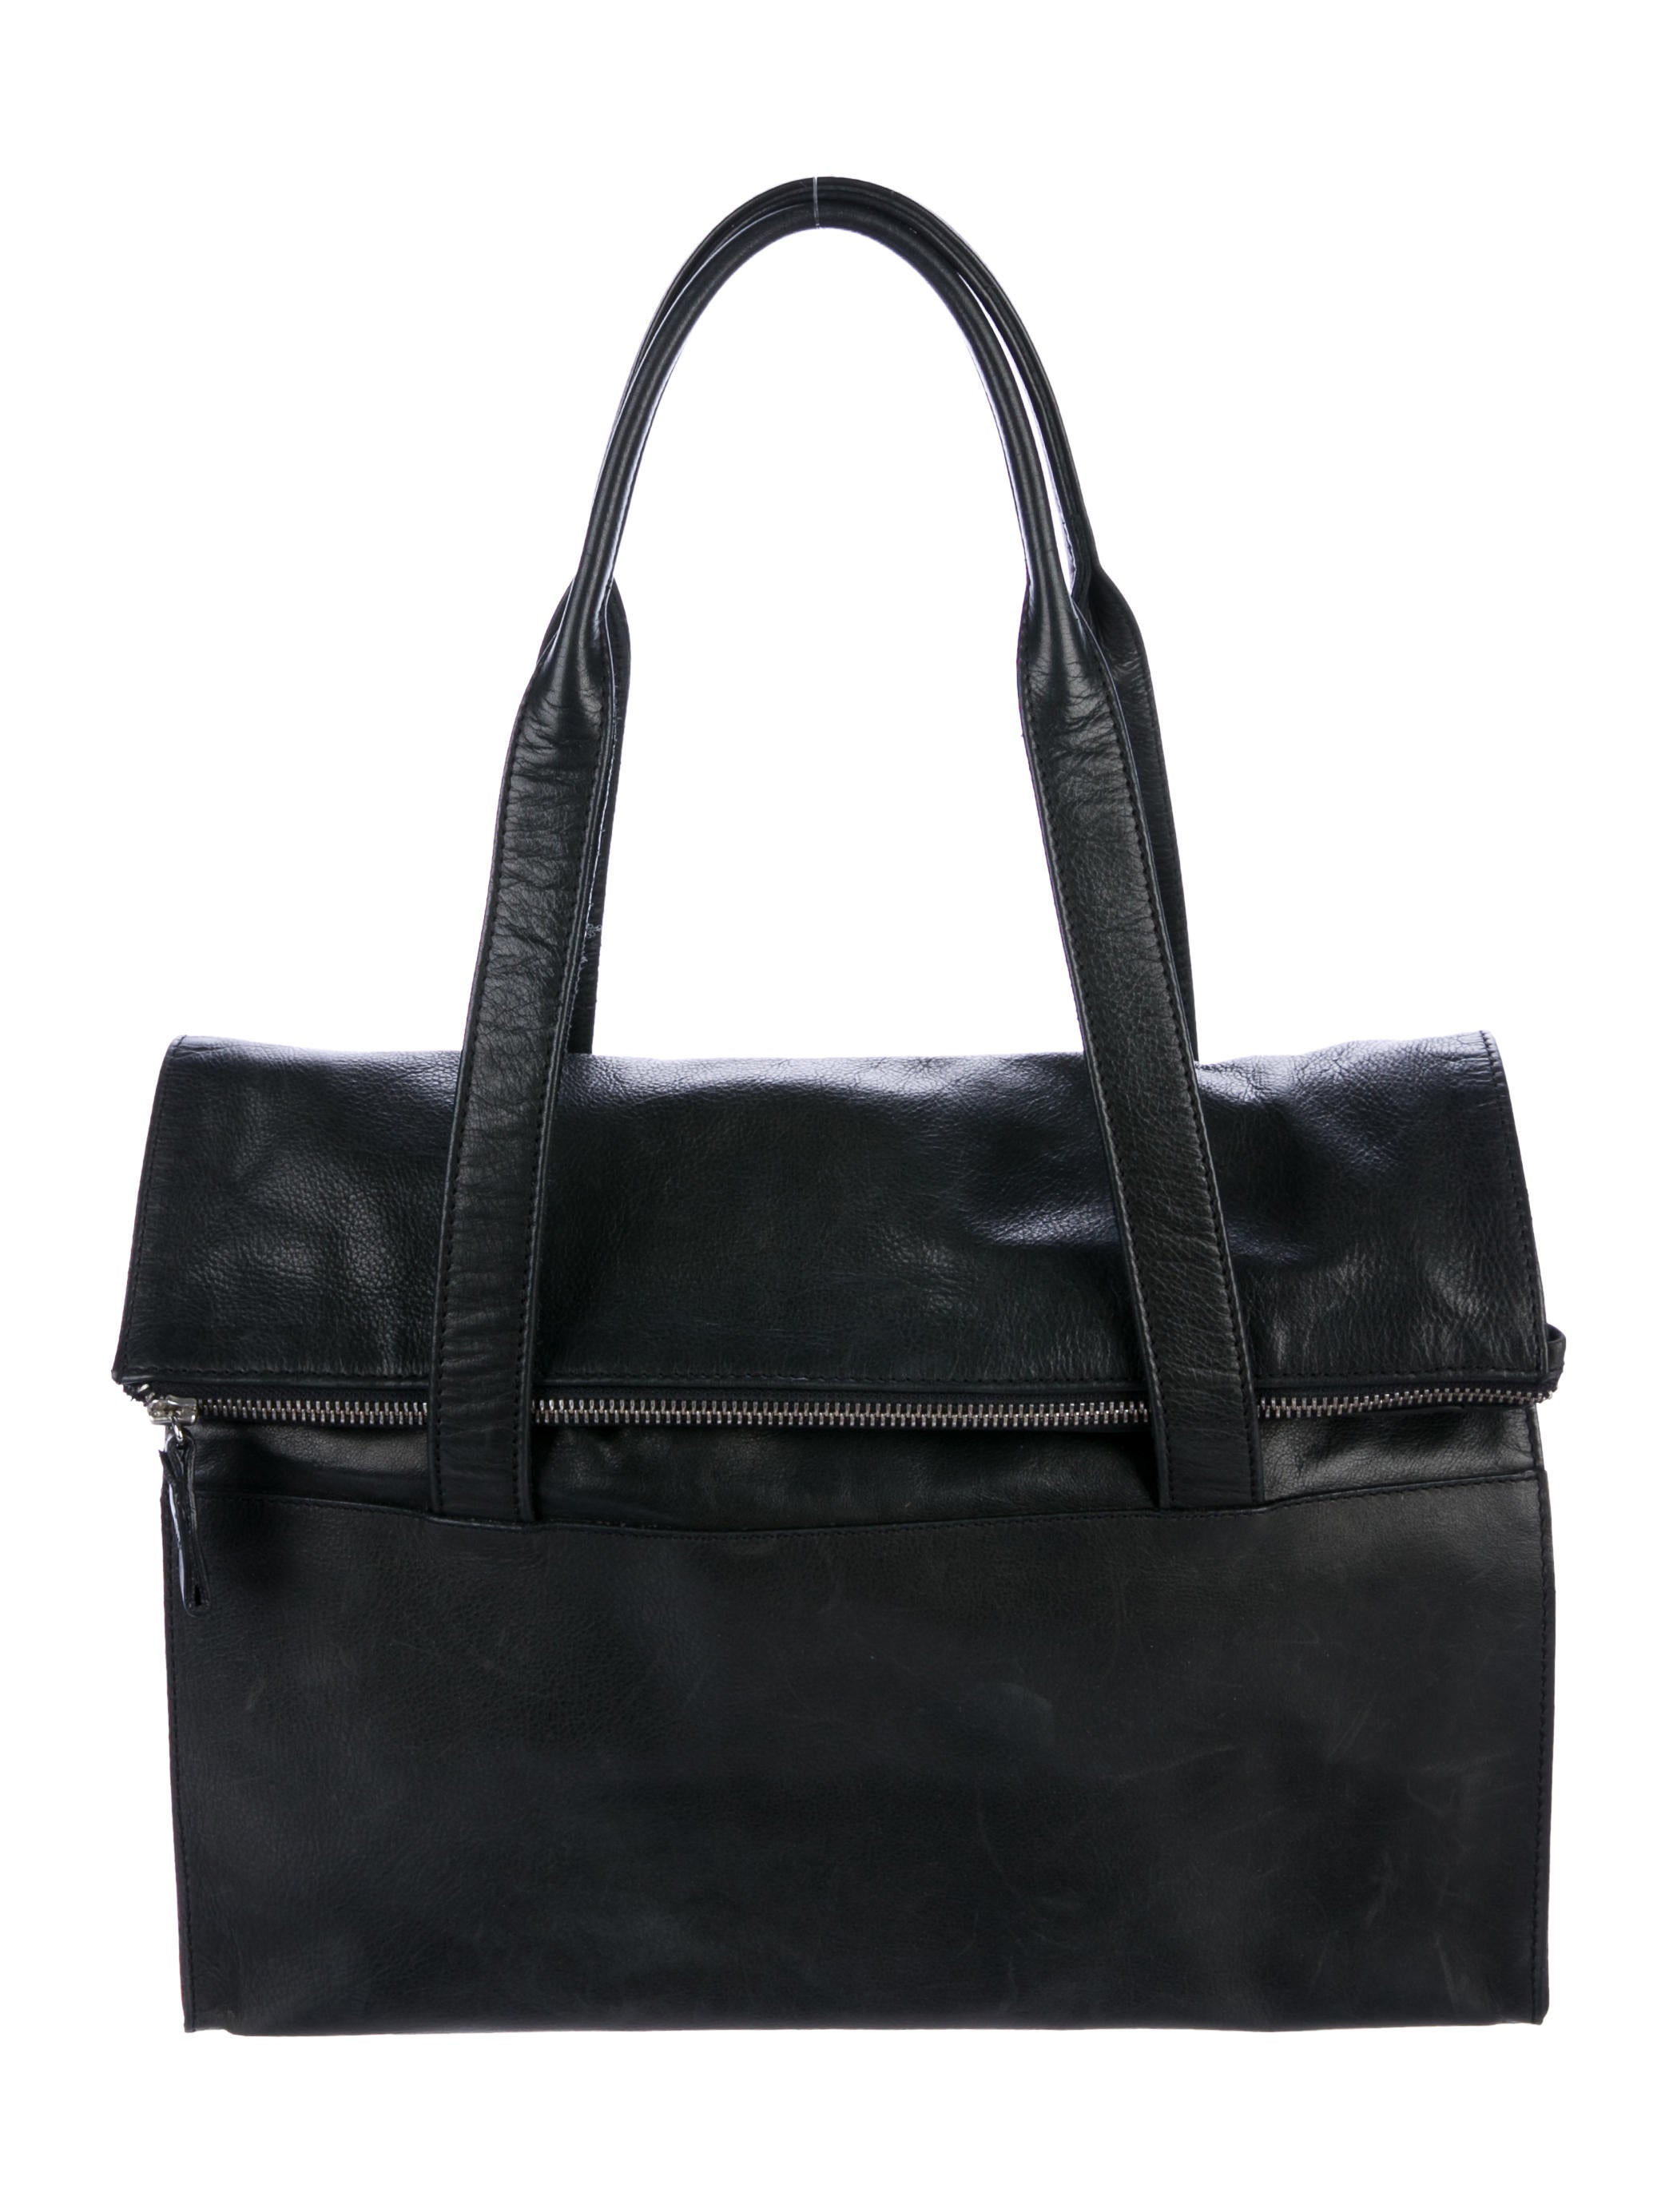 Ann Demeulemeester foldover shoulder bag Very Cheap Newest Cheap Online Free Shipping Footlocker Finishline Cheap Sale Latest Collections Buy Cheap Release Dates oE8yPQufmQ